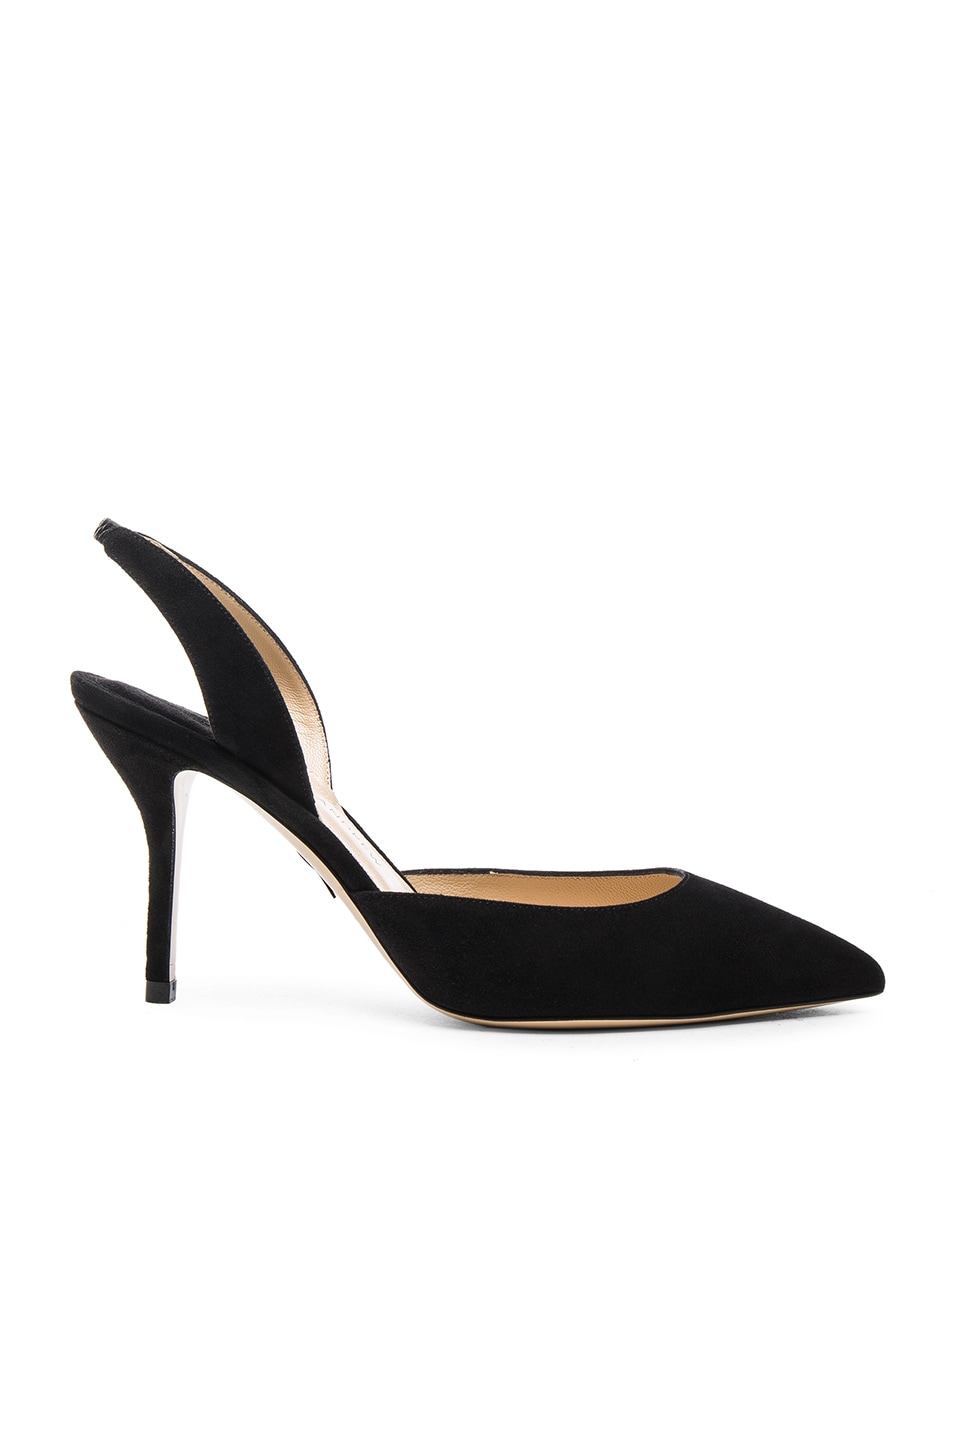 Image 1 of Paul Andrew Aw Suede Heels in Black